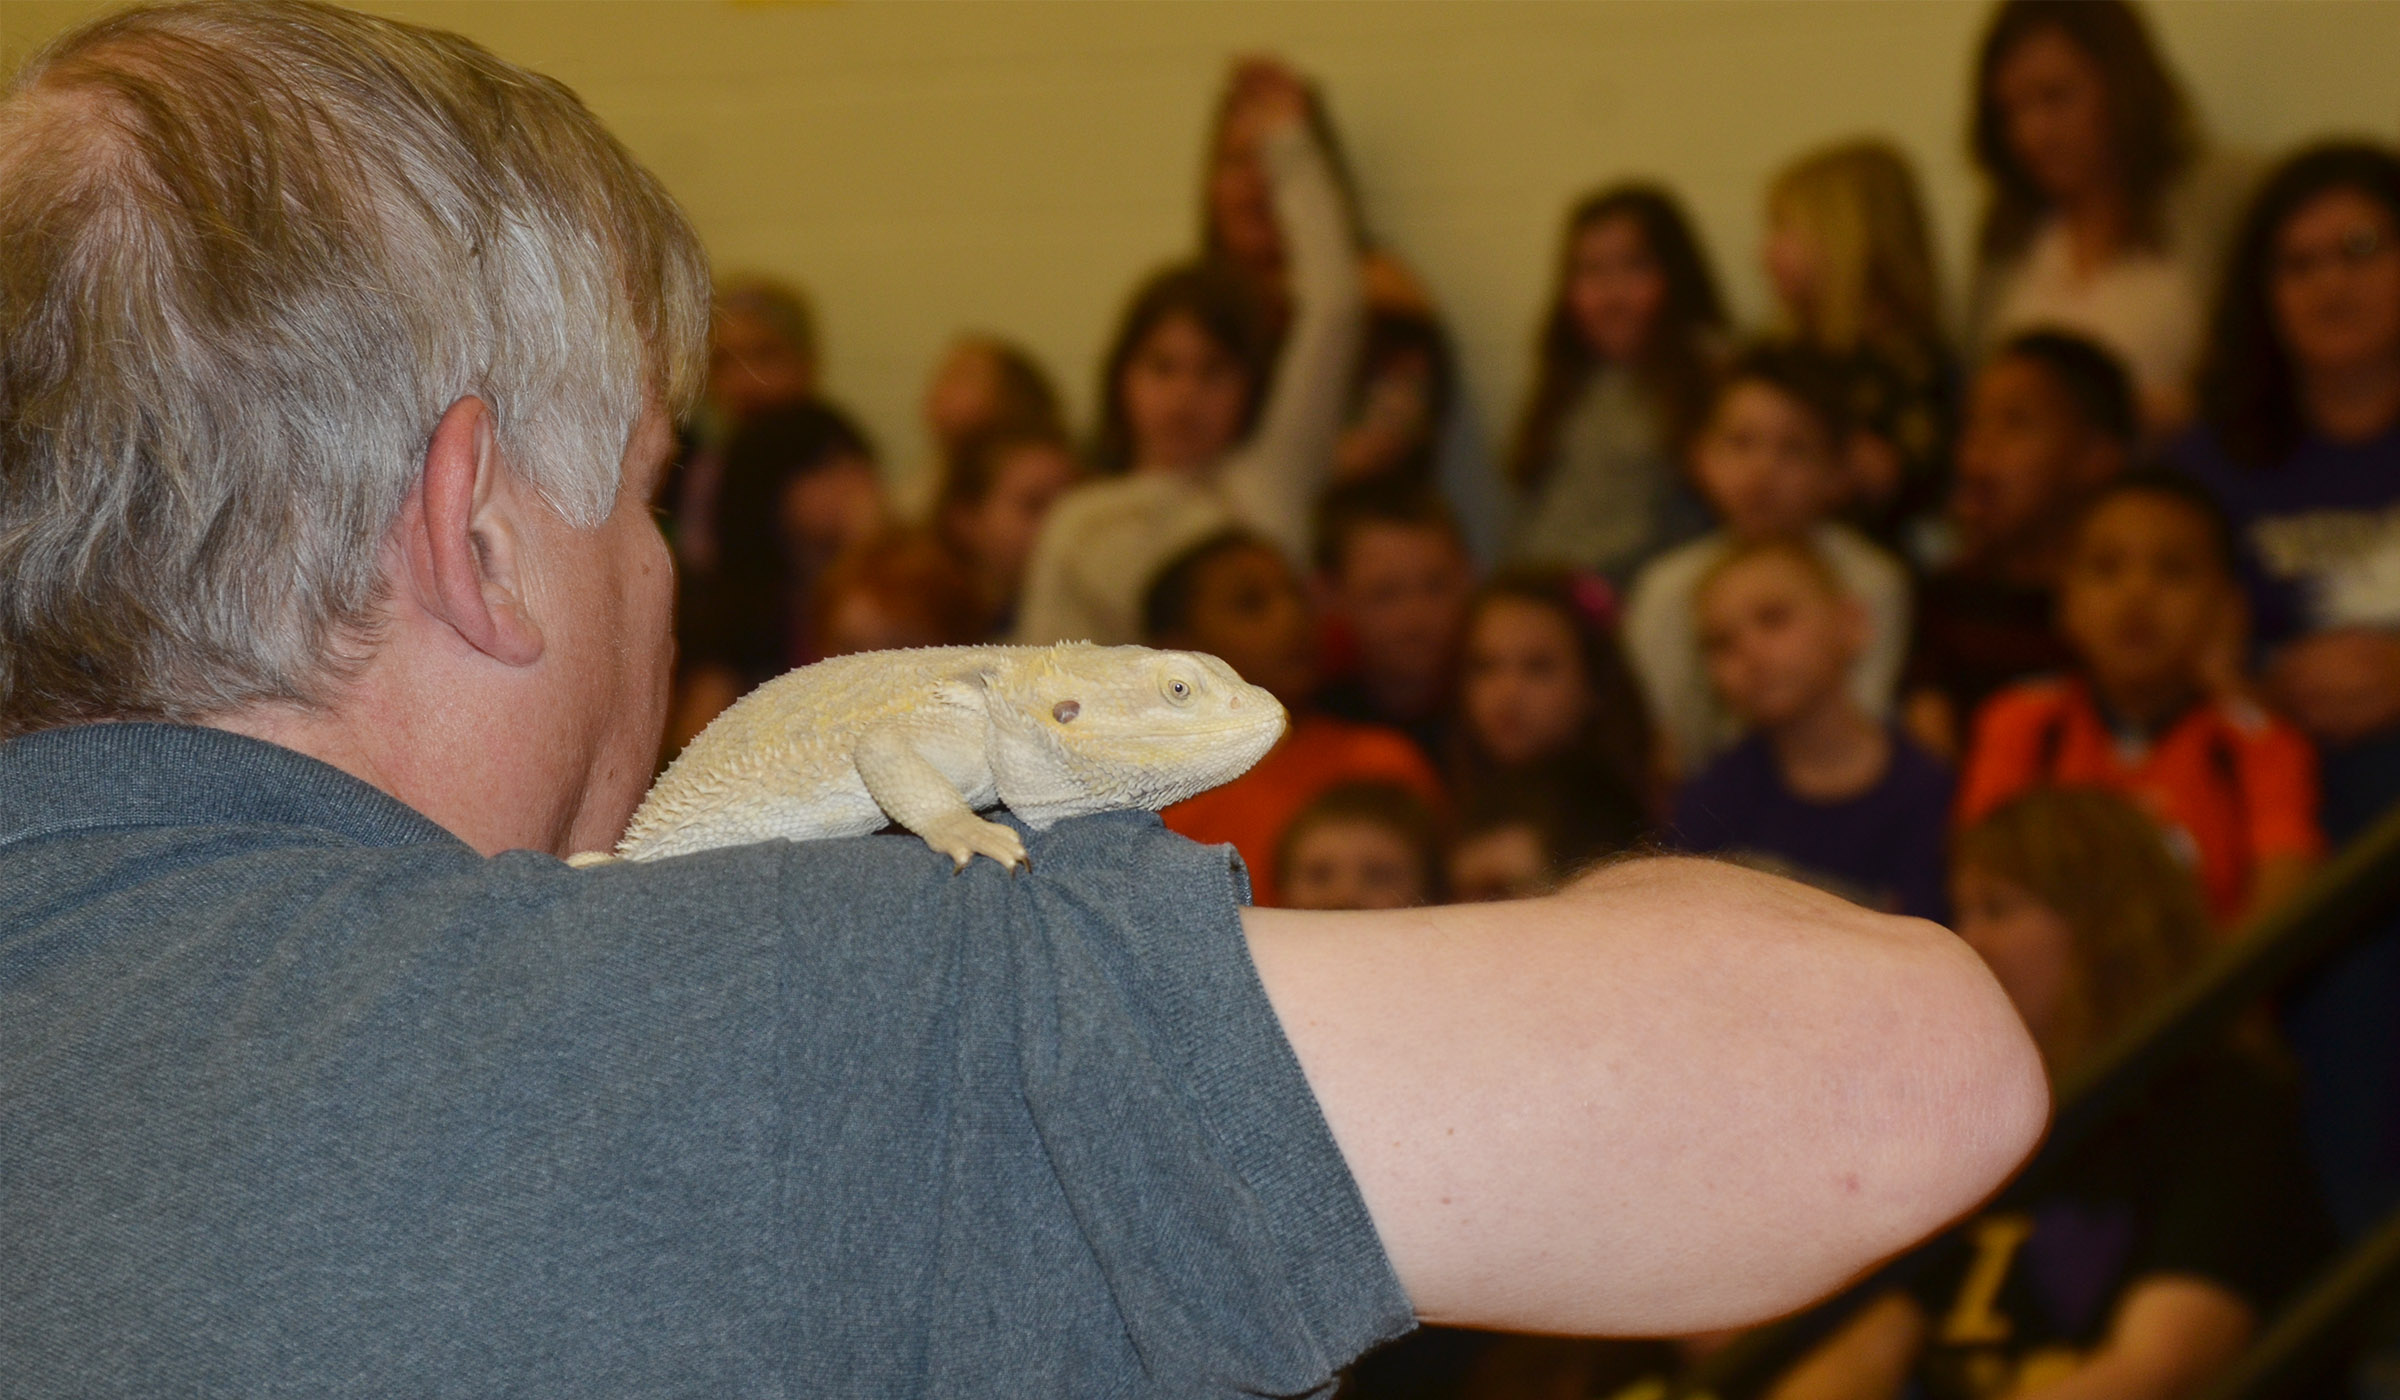 Steven Thomas of Zoodles animal education program shows CES students a bearded dragon.